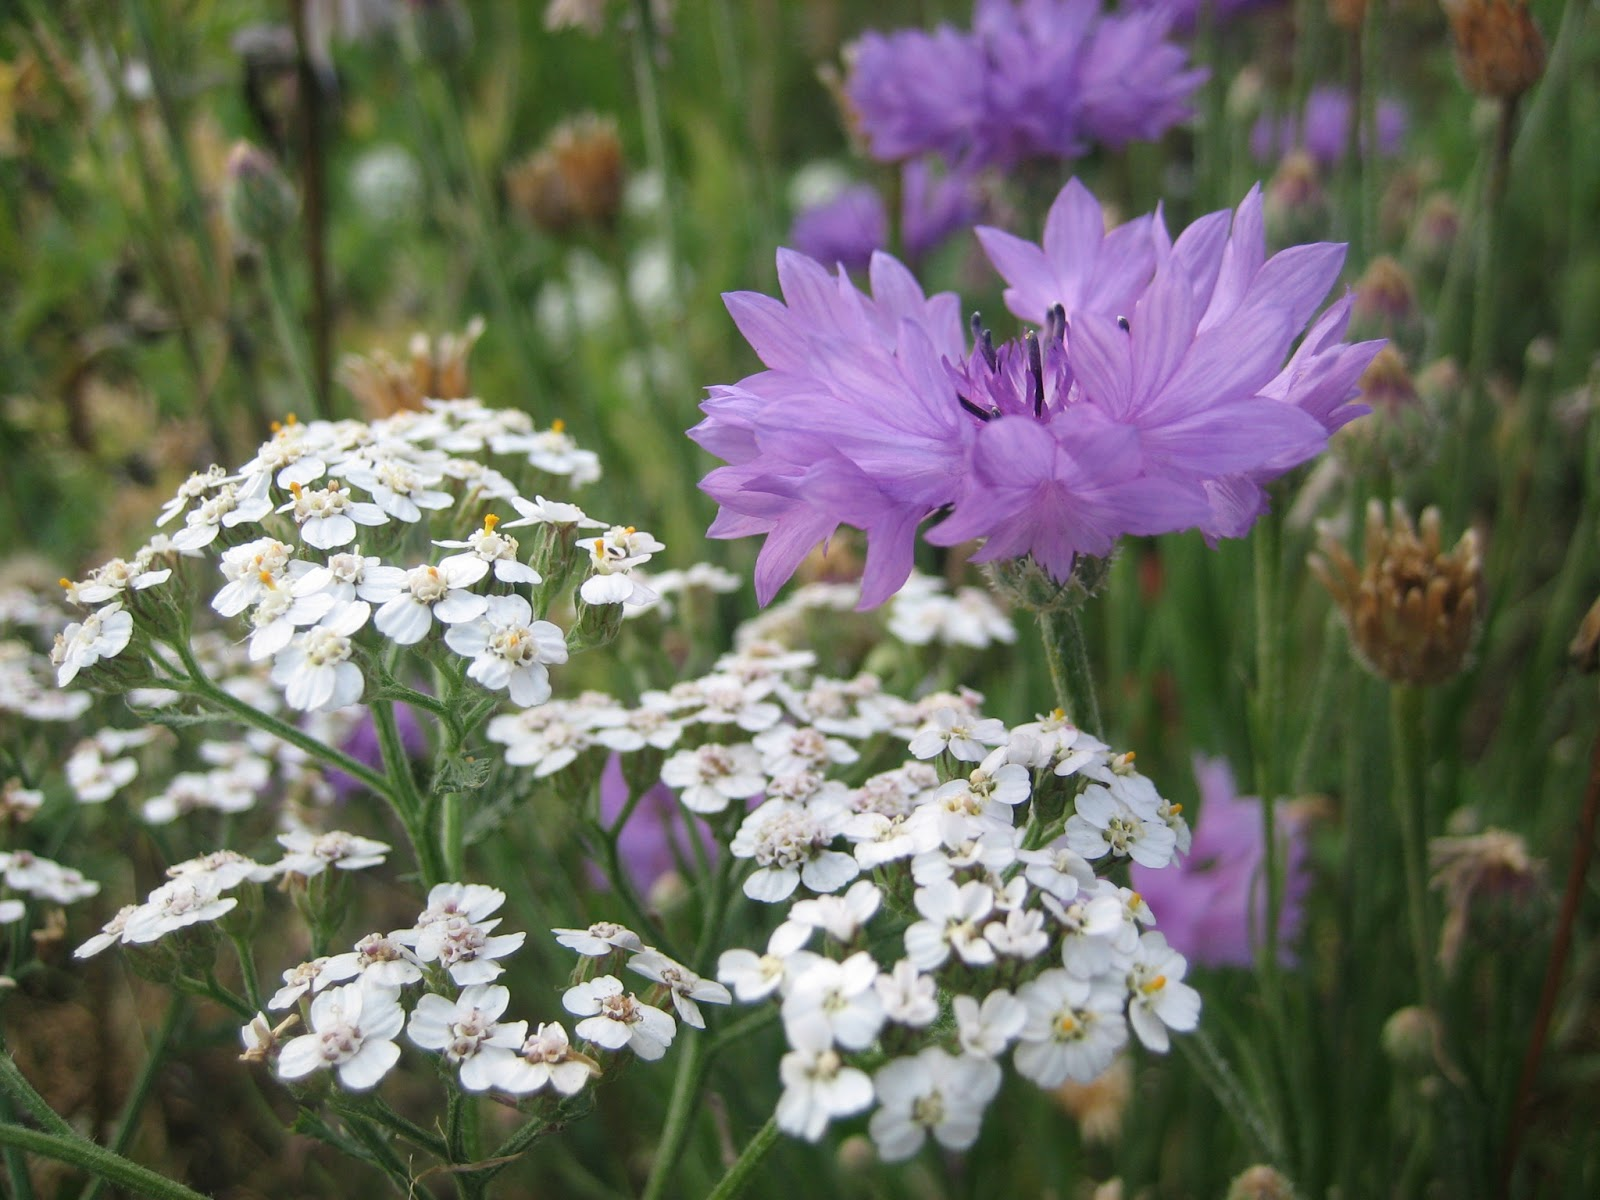 Flower Heads With Bright Blue Pink Purple Or White Ray And Disc Flowers In Picture Growing Together Yarrow On The Left Tall Grey Green